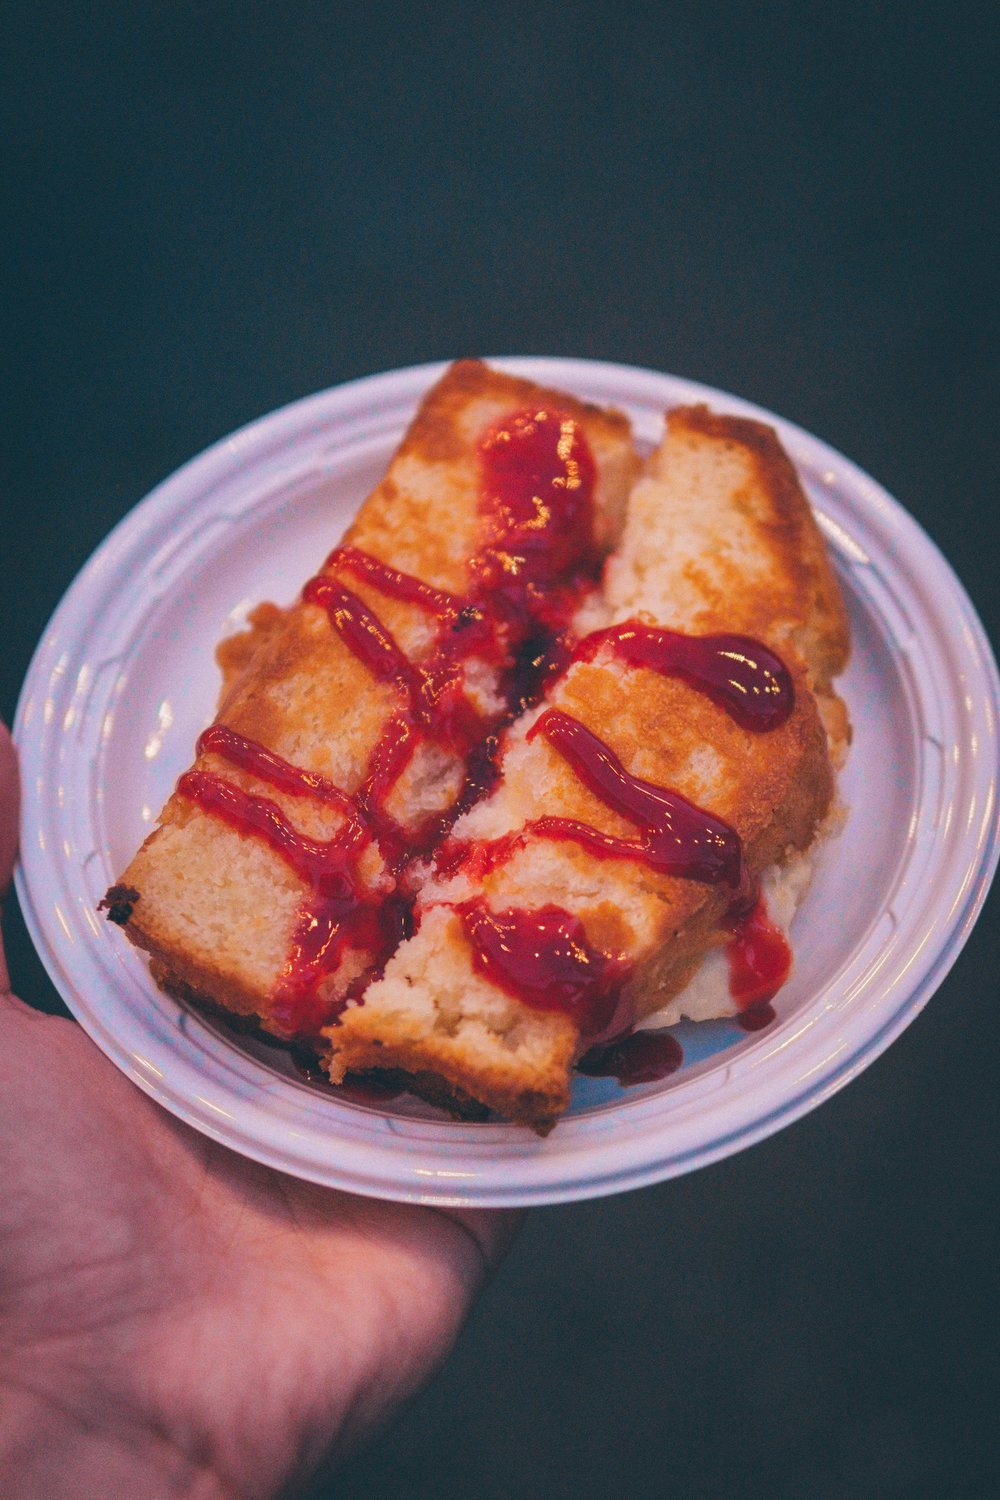 10) Gourmet Lodge: Griddled Cheesecake Sandwich with Raspberry Drizzle